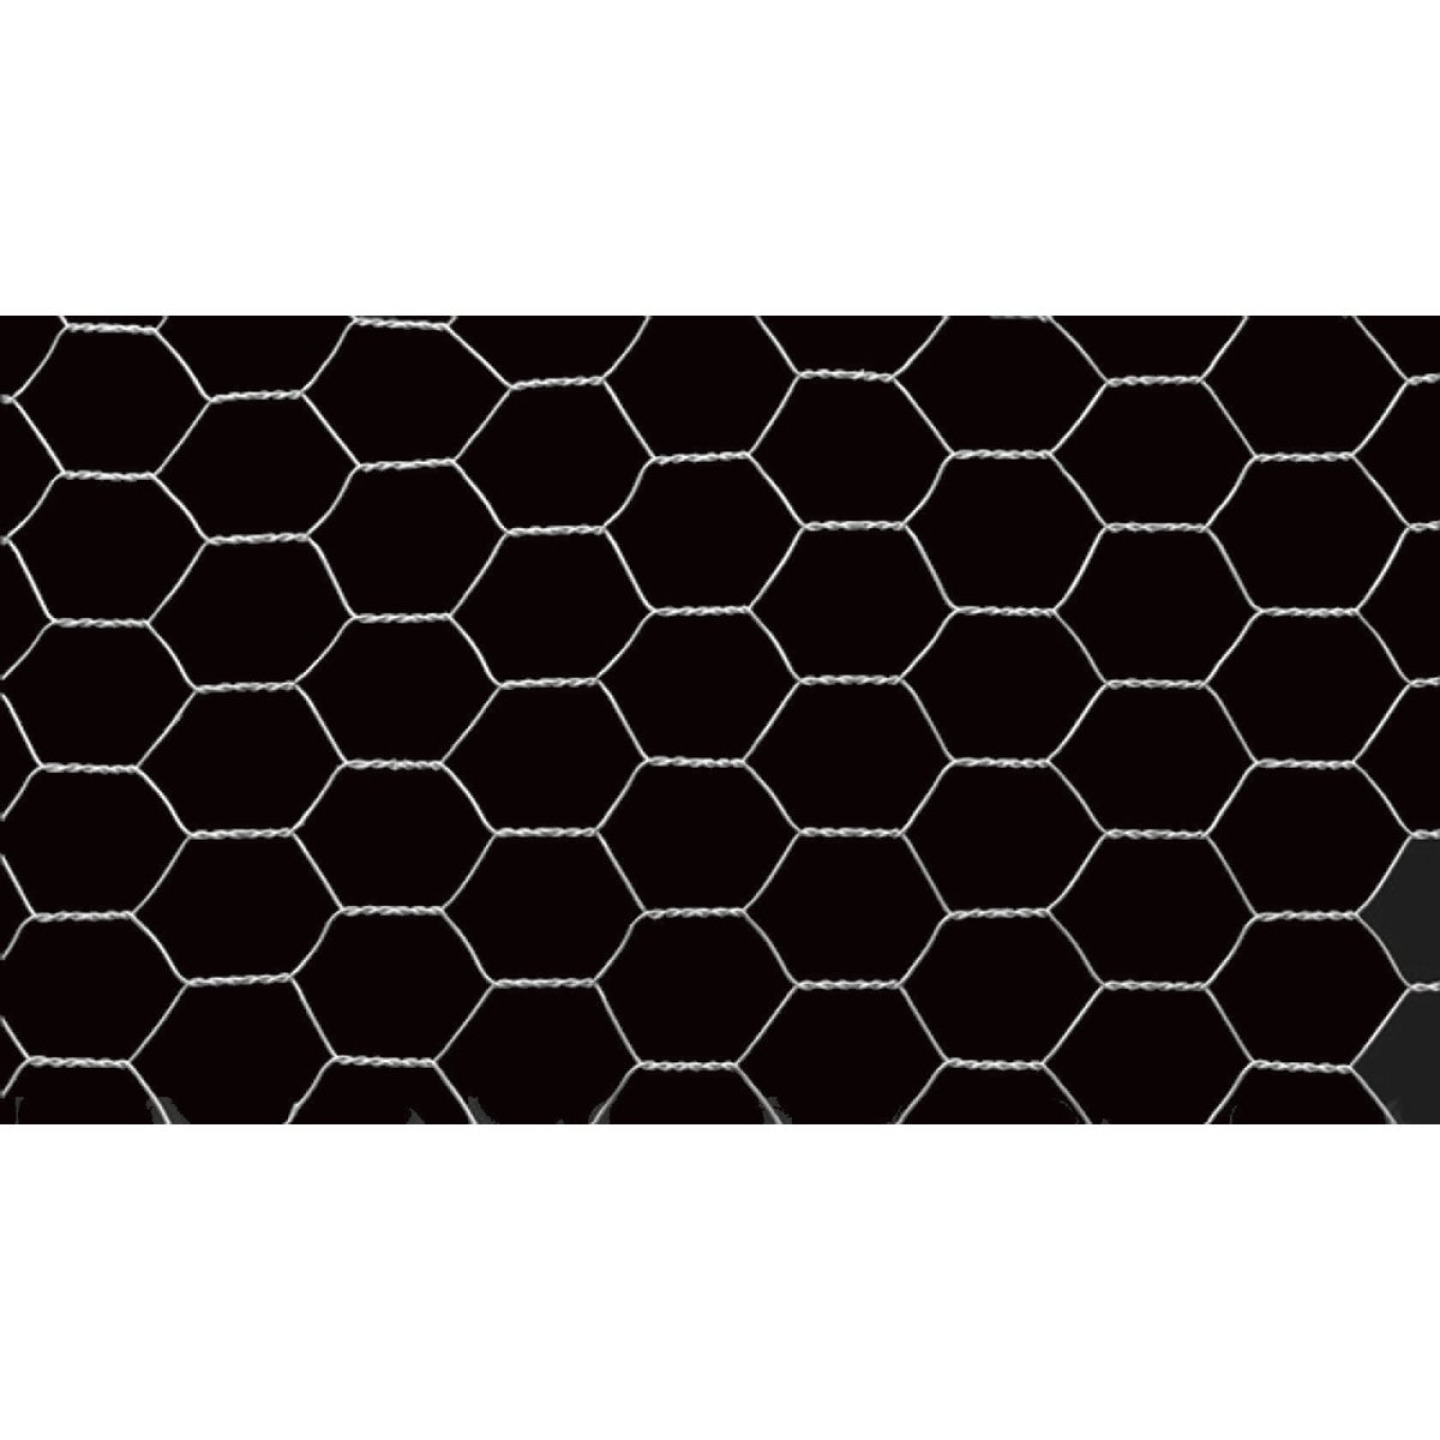 Do it 1 In. x 48 In. H. x 25 Ft. L. Hexagonal Wire Poultry Netting Image 3